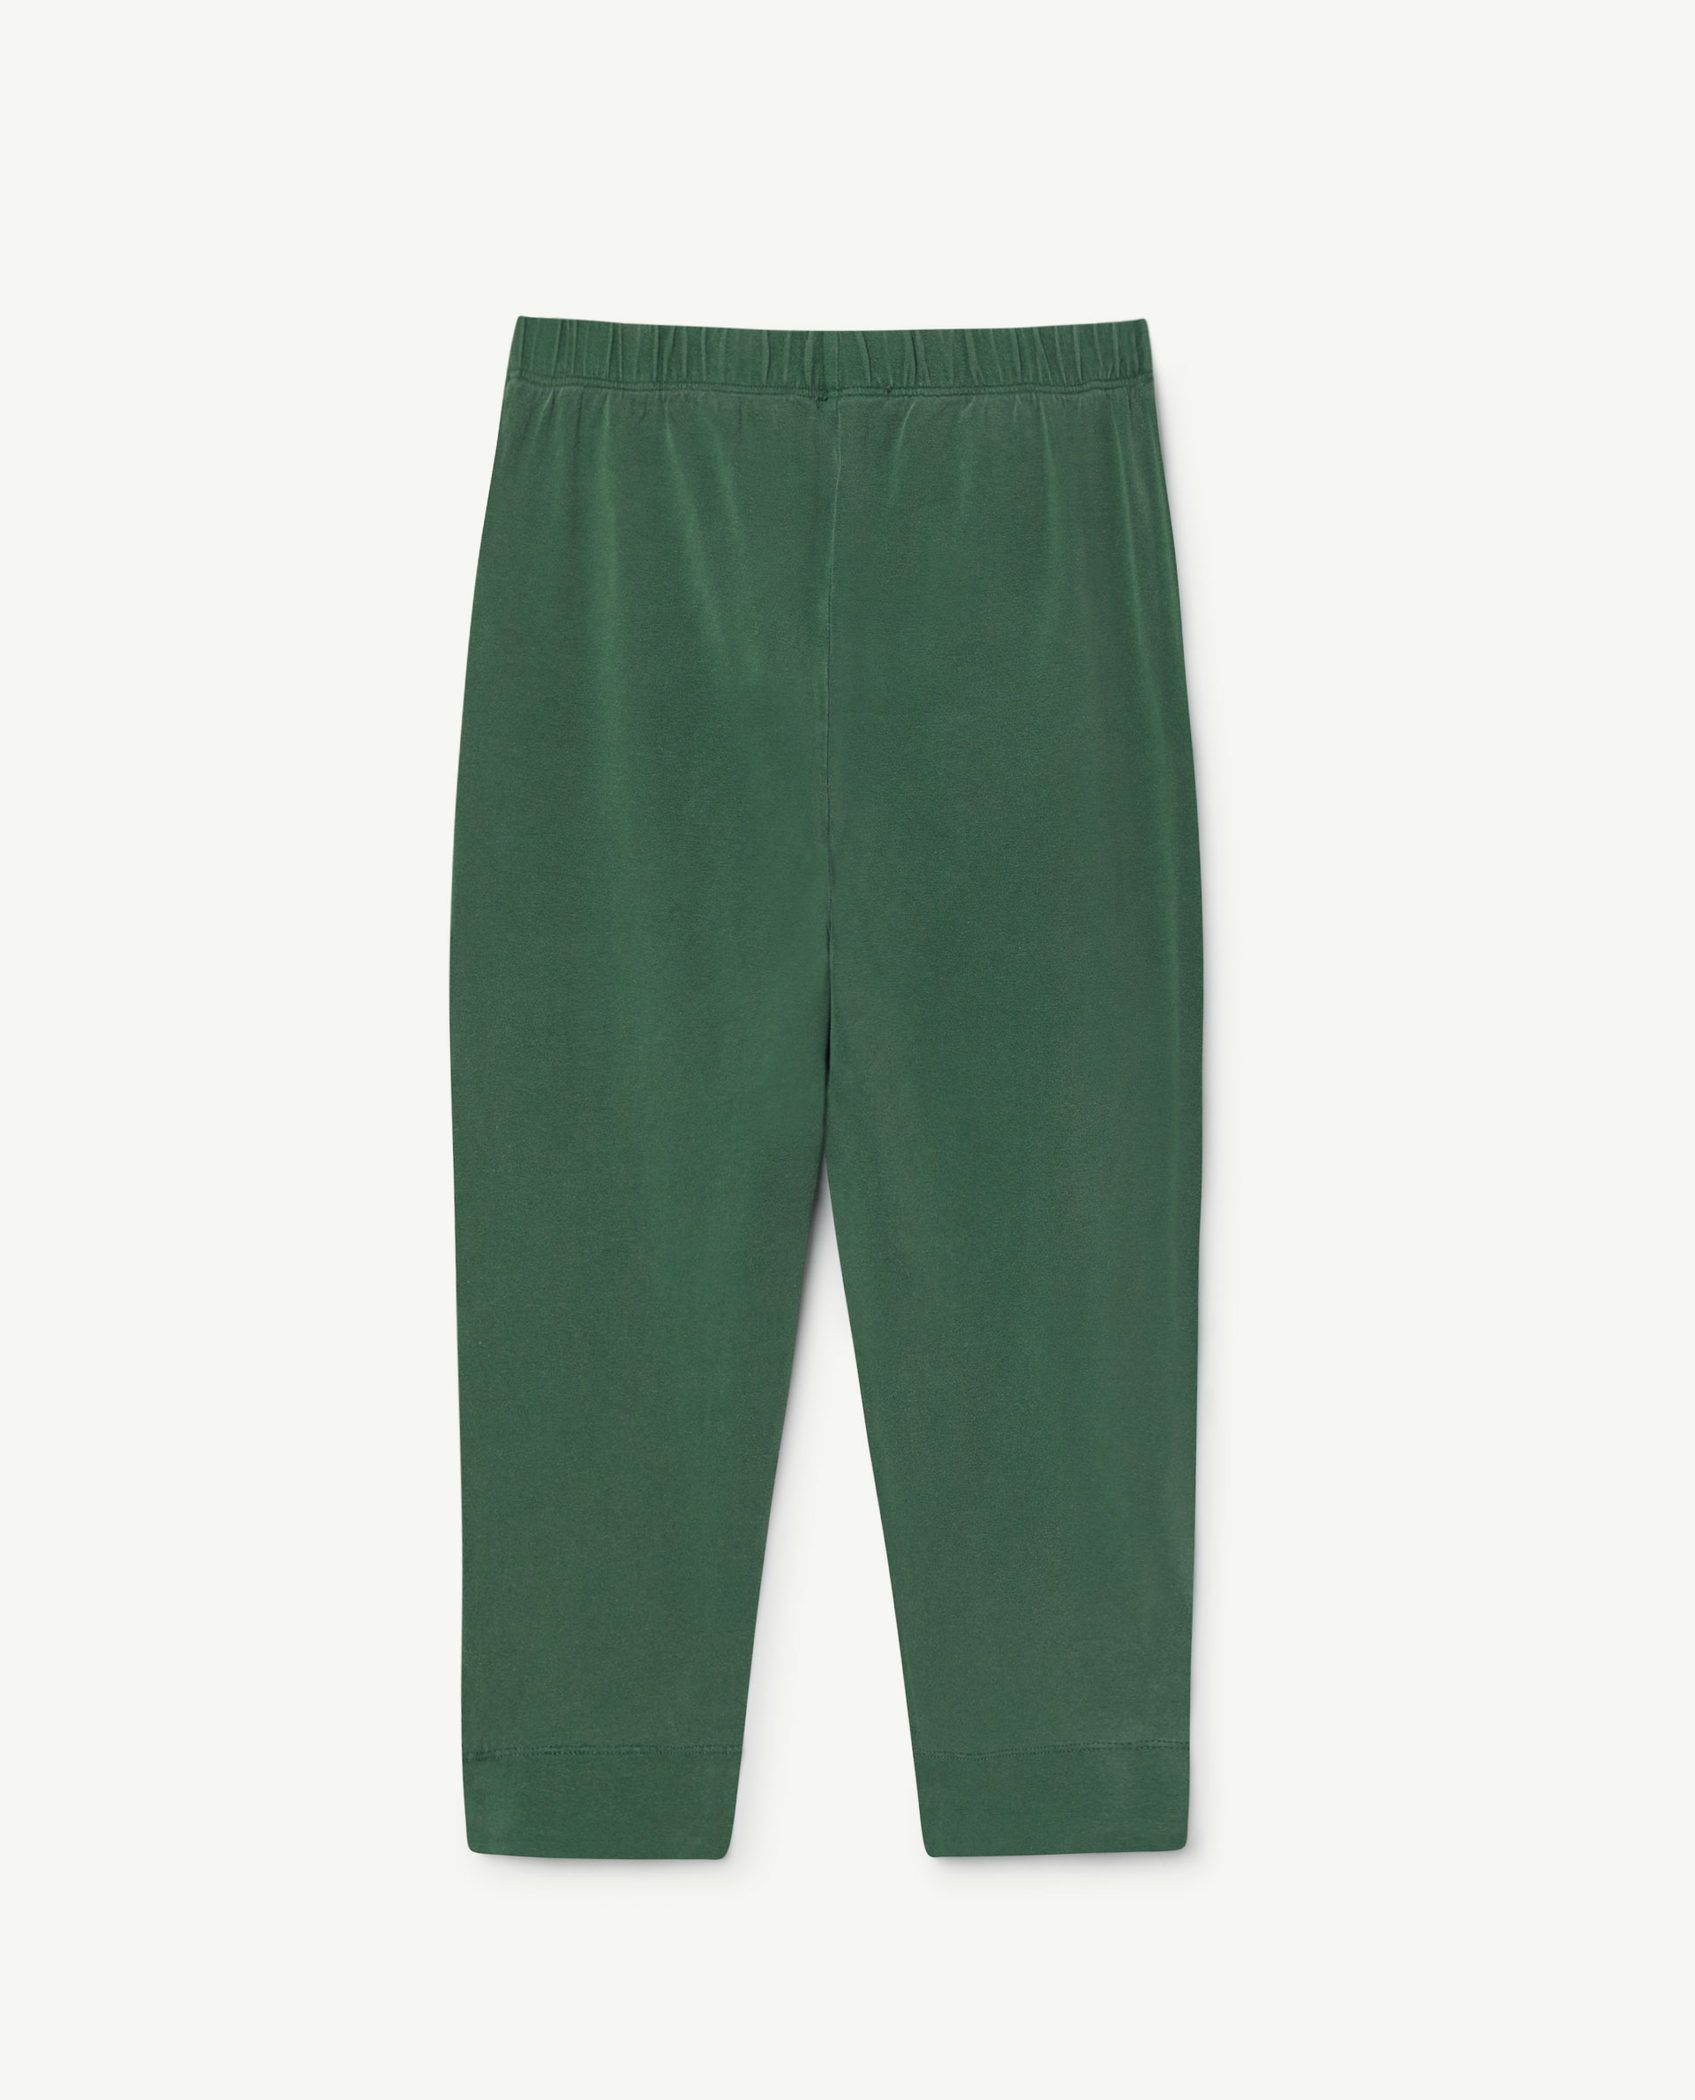 Green Rhino Pants img-2